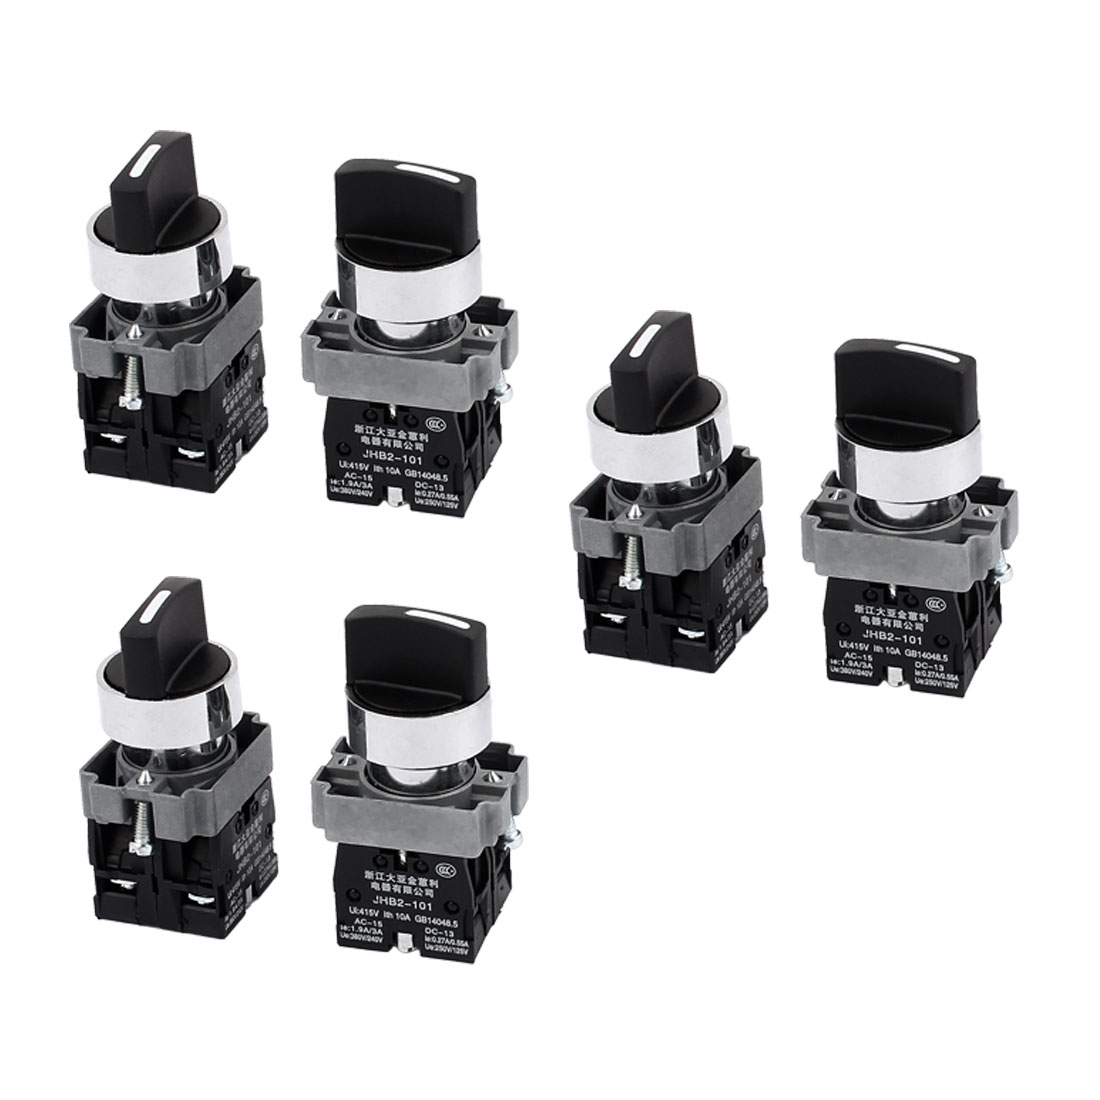 AC 415V 10A Self-Locking 2NO 3 Positions Rotary Selector Switch 6PCS